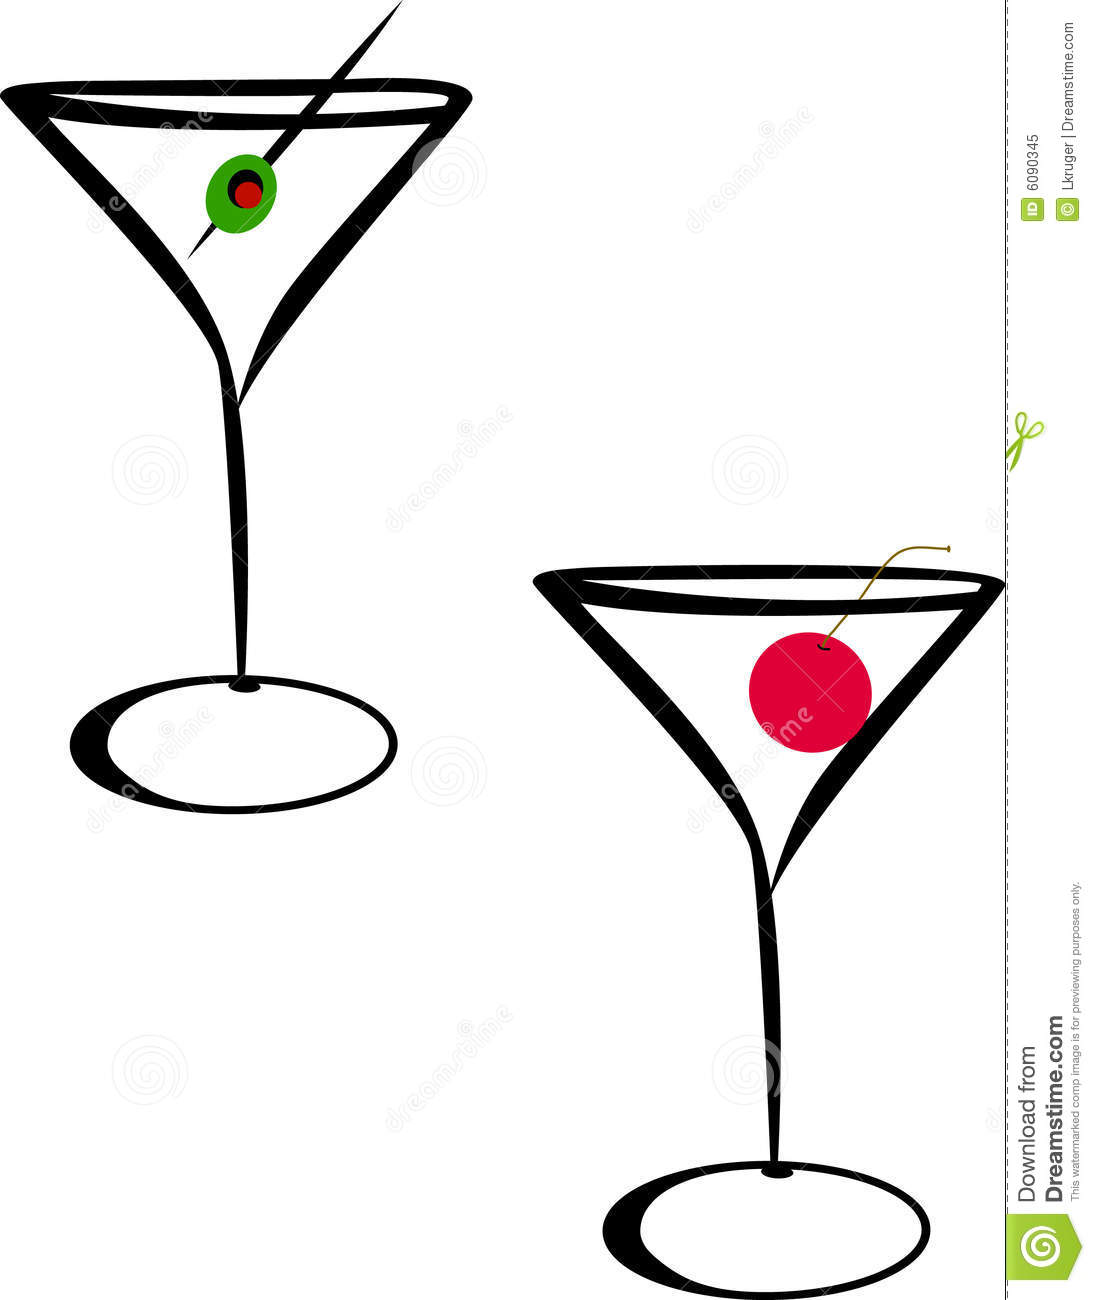 martini glasses stock illustration illustration of beverage 6090345 rh dreamstime com